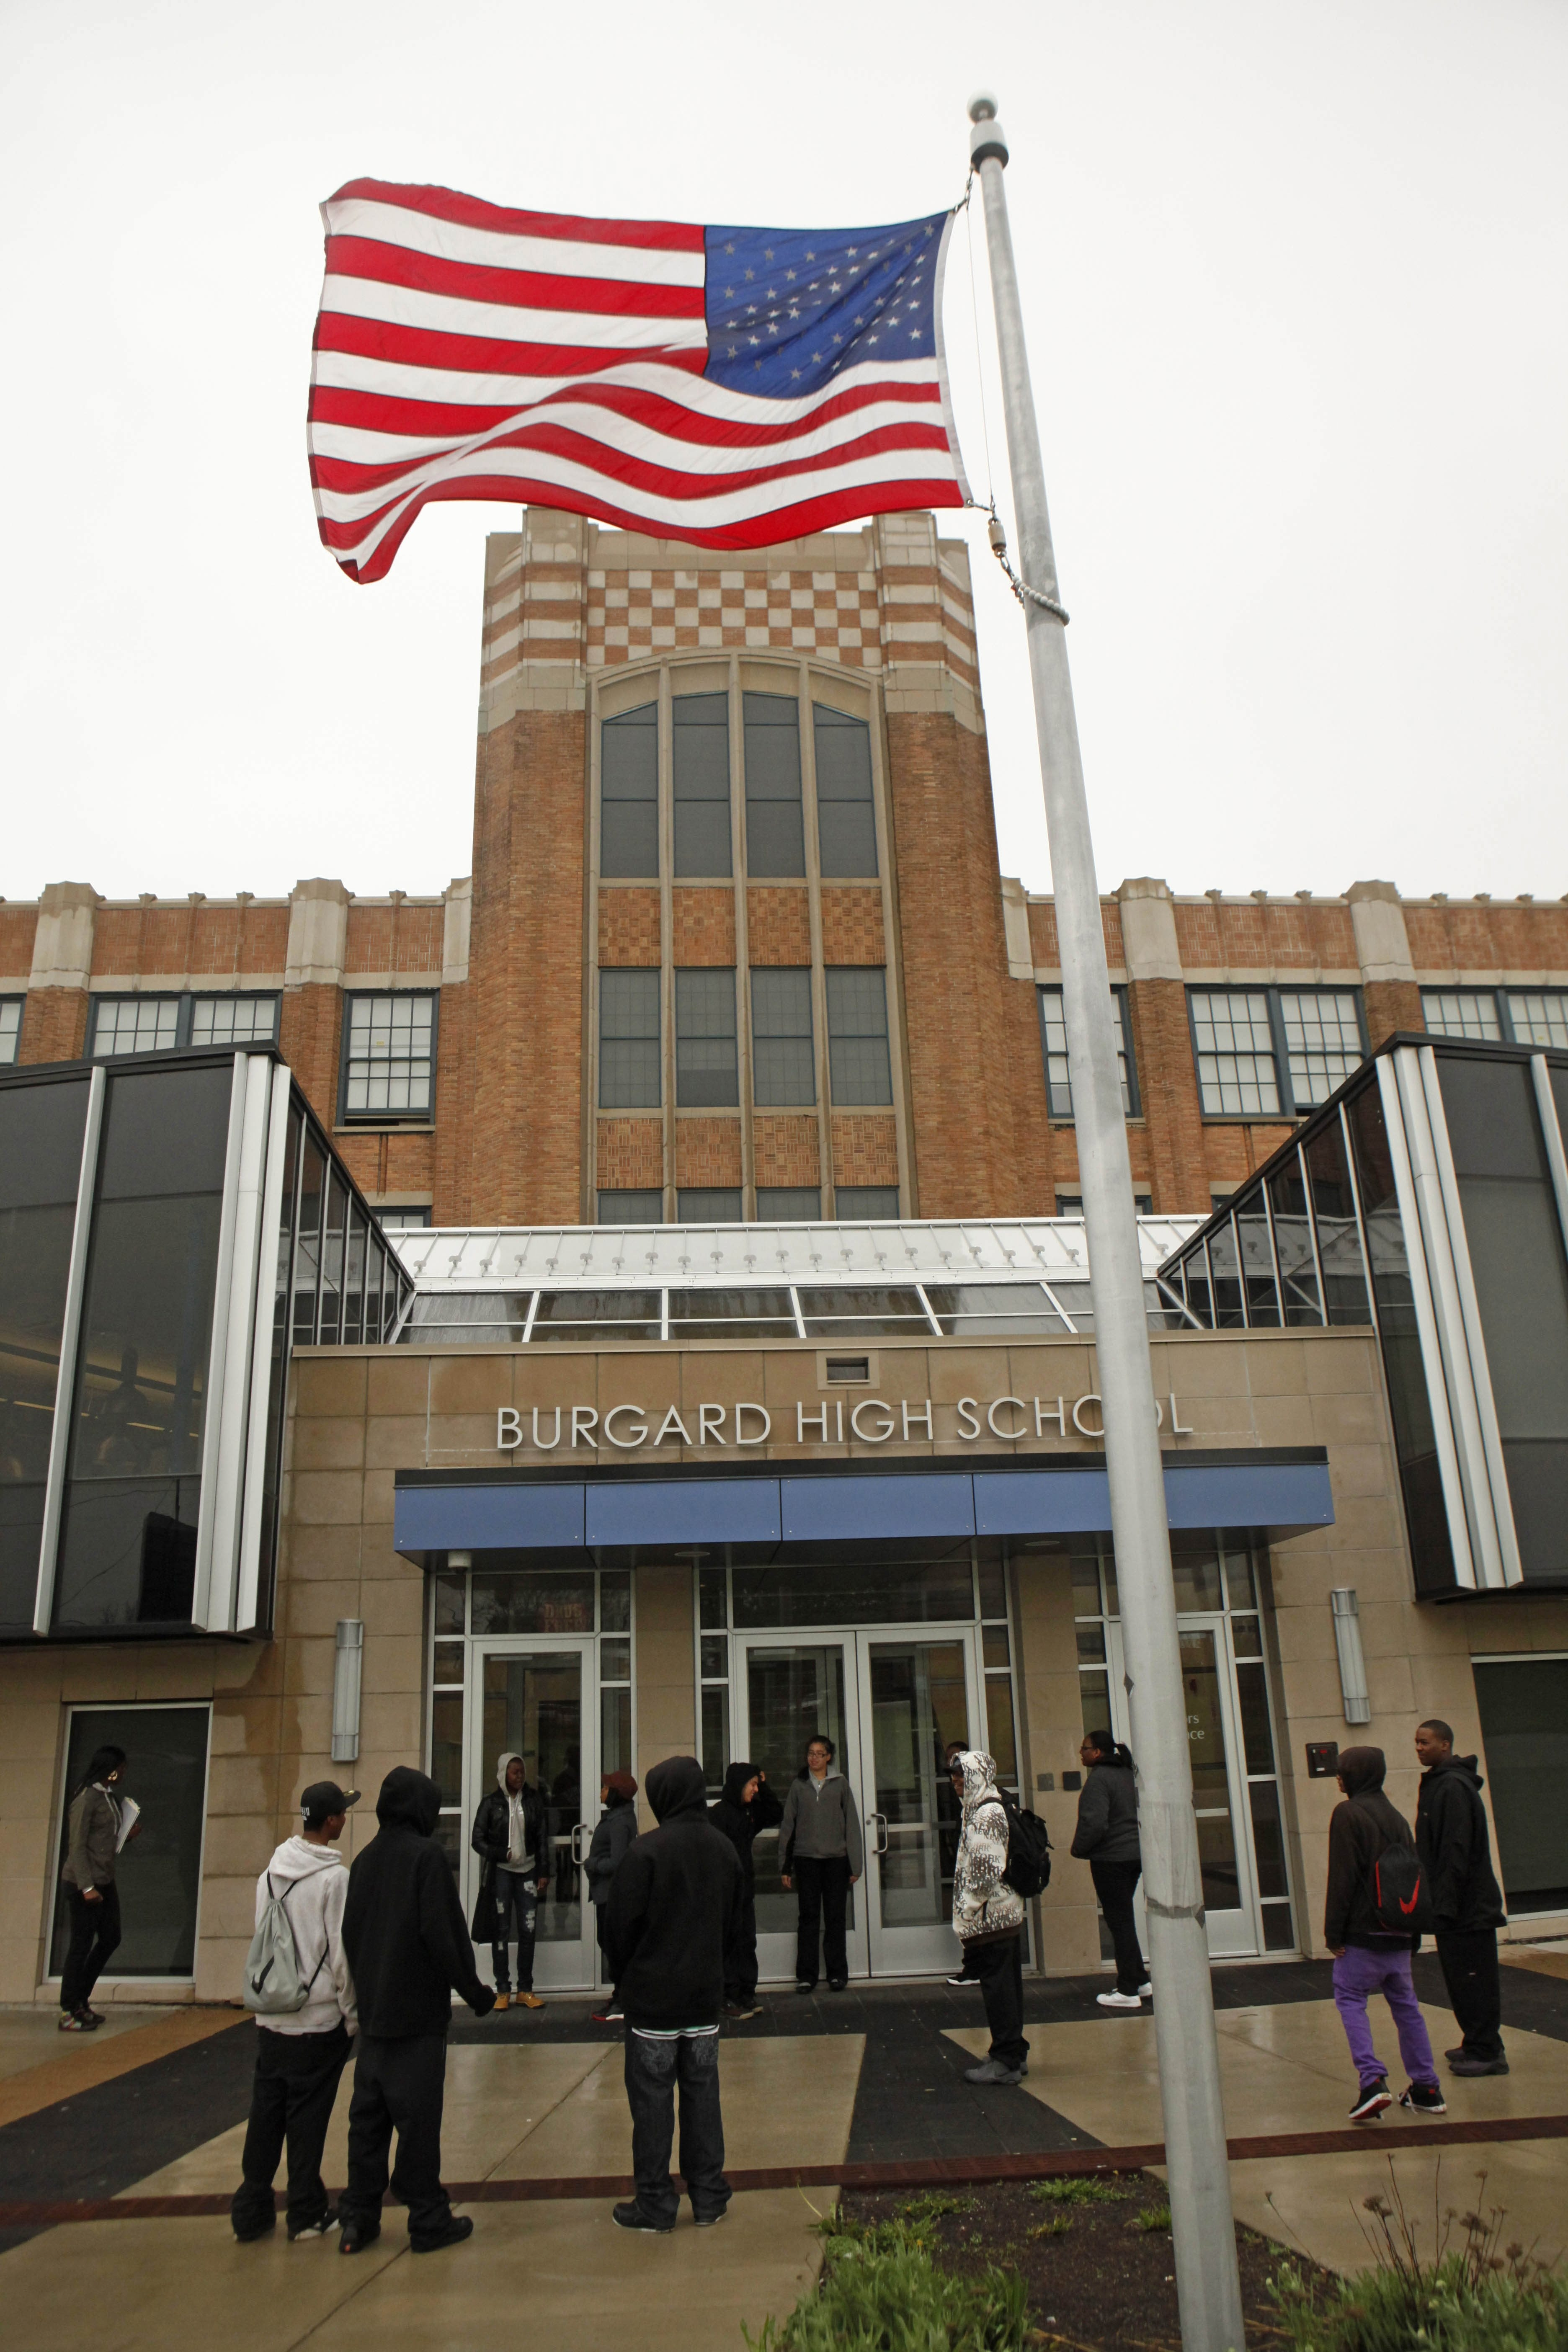 Burgard High School is one of five long-struggling Buffalo public schools that could be subject to outside control after next school year under an agreement reached between Gov. Andrew M. Cuomo's office and the State Legislature.